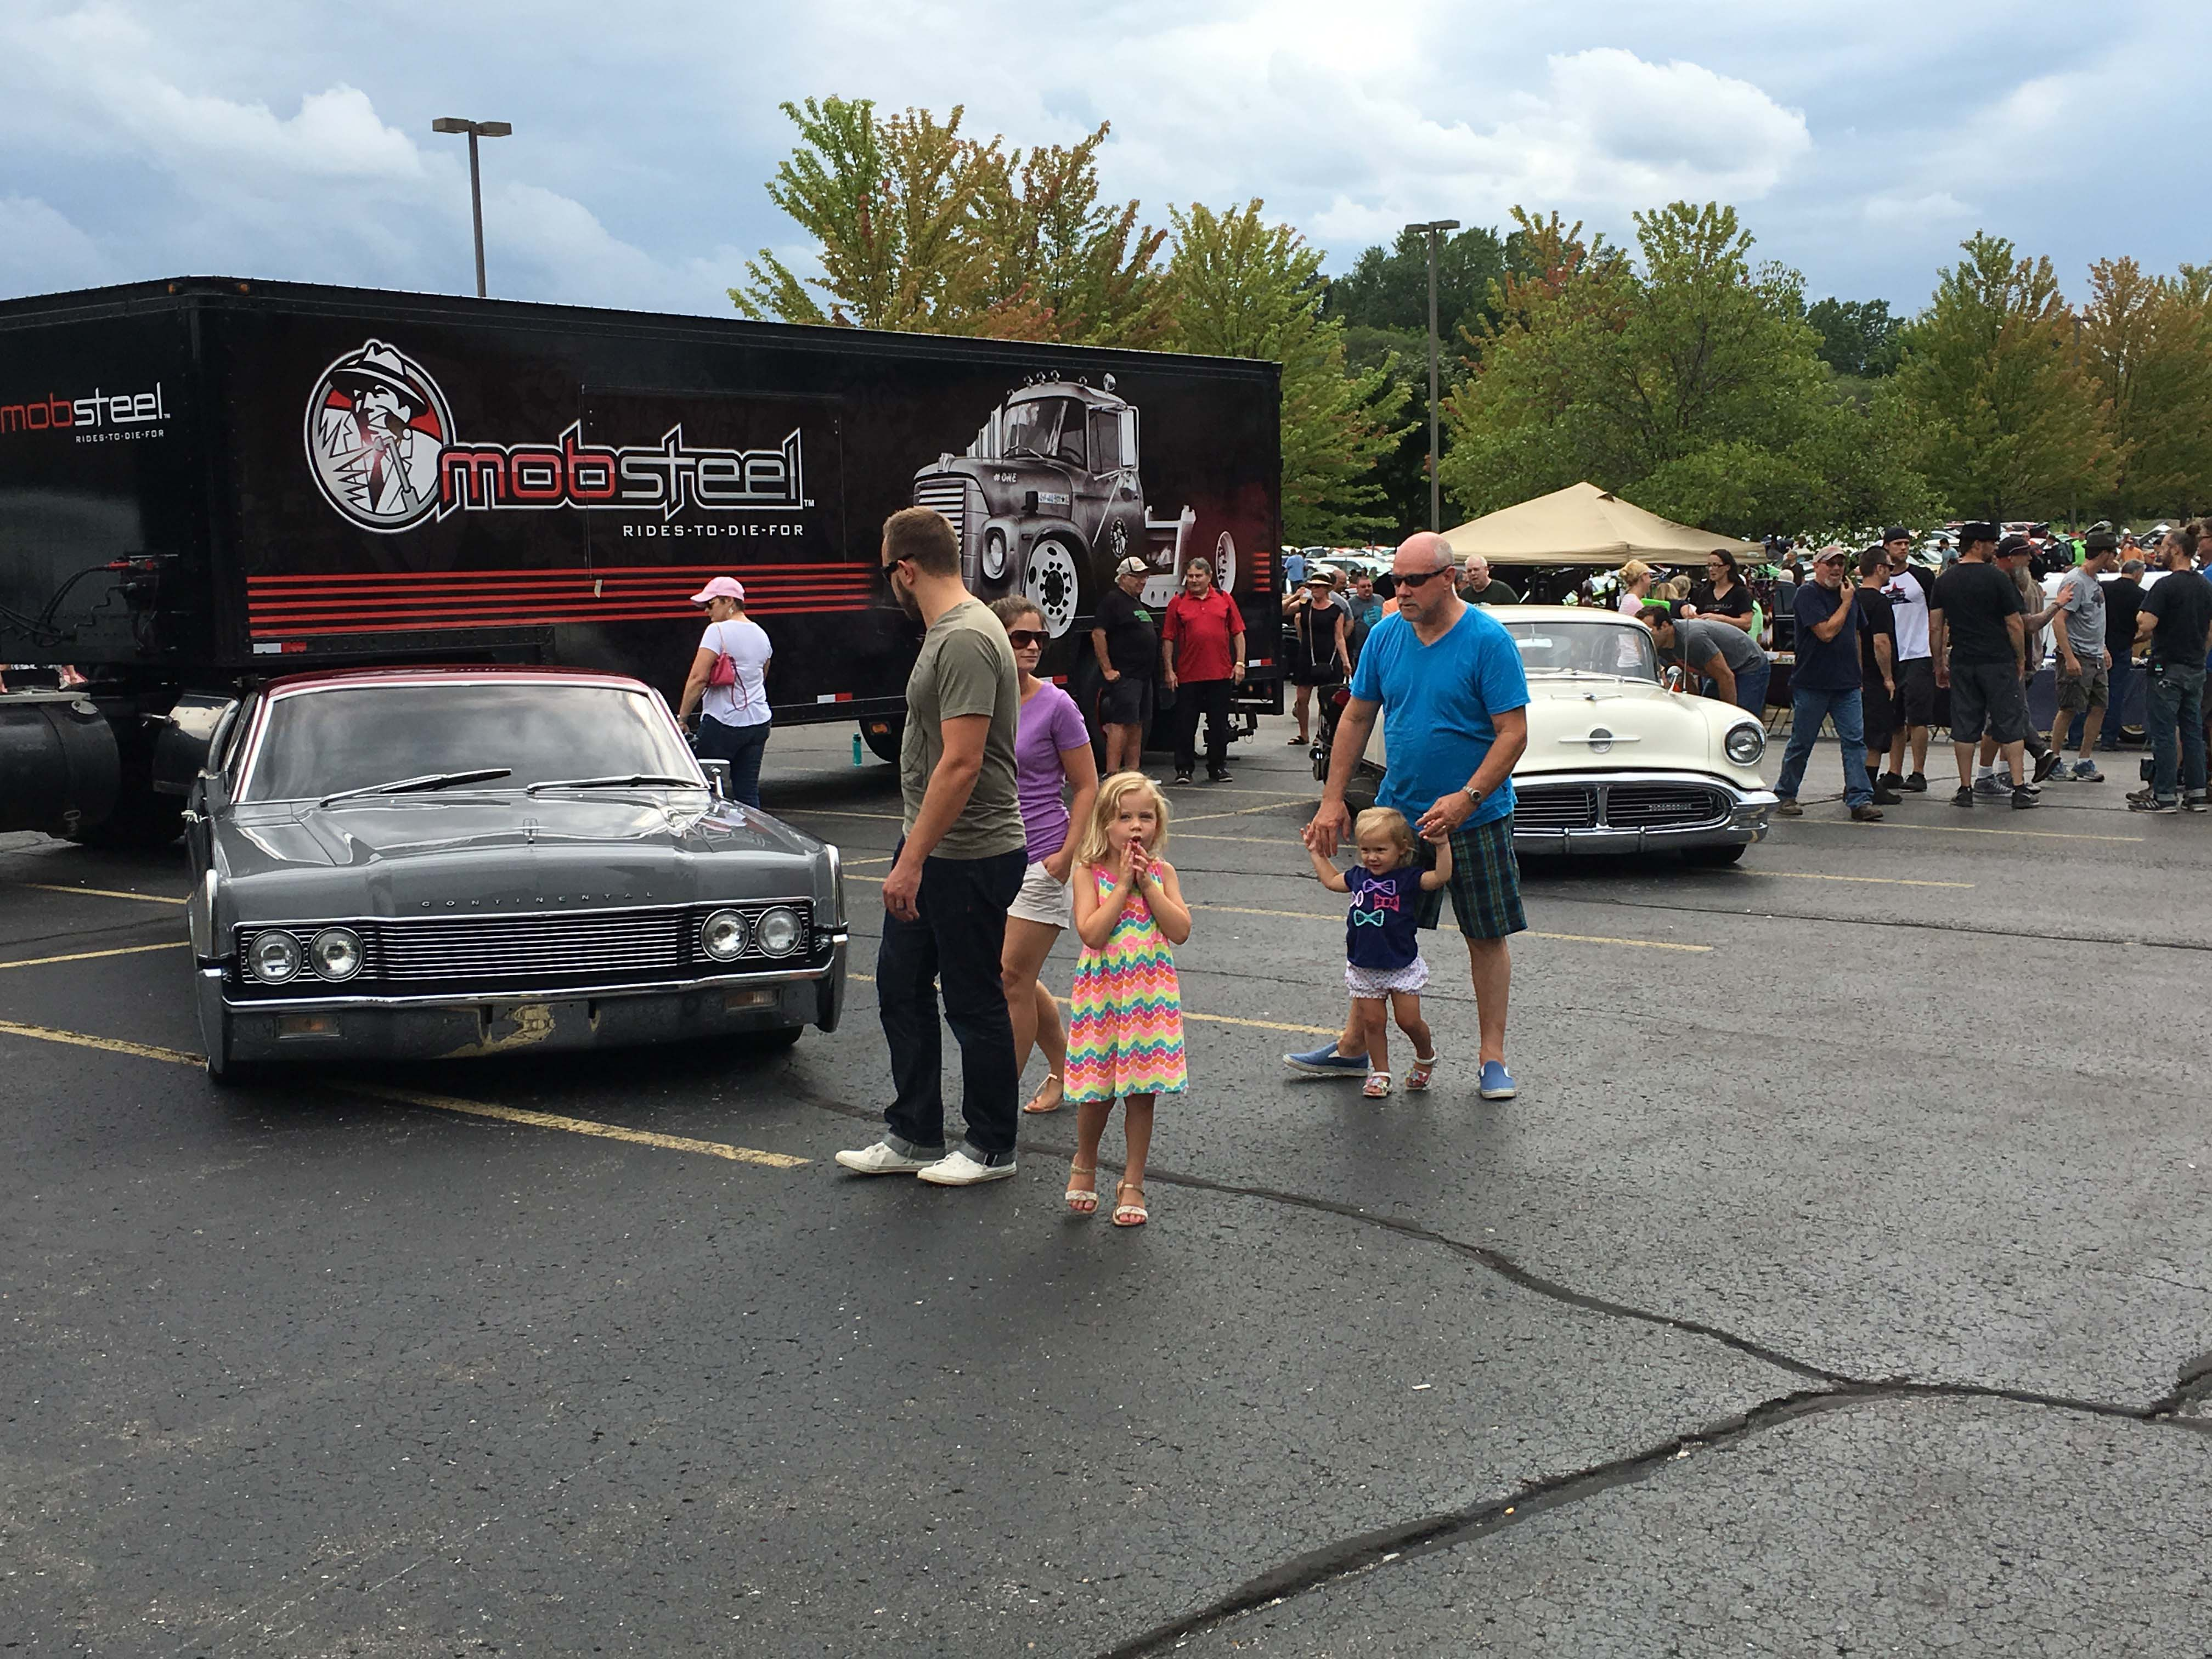 The Baker Cruise is held every Sunday during the summer in Milford, MI. It is one of the largest and longest-running weekly cruises in the country. During our visit the crew from the Mob Steel TV show was filming for an episode of that popular cable series.